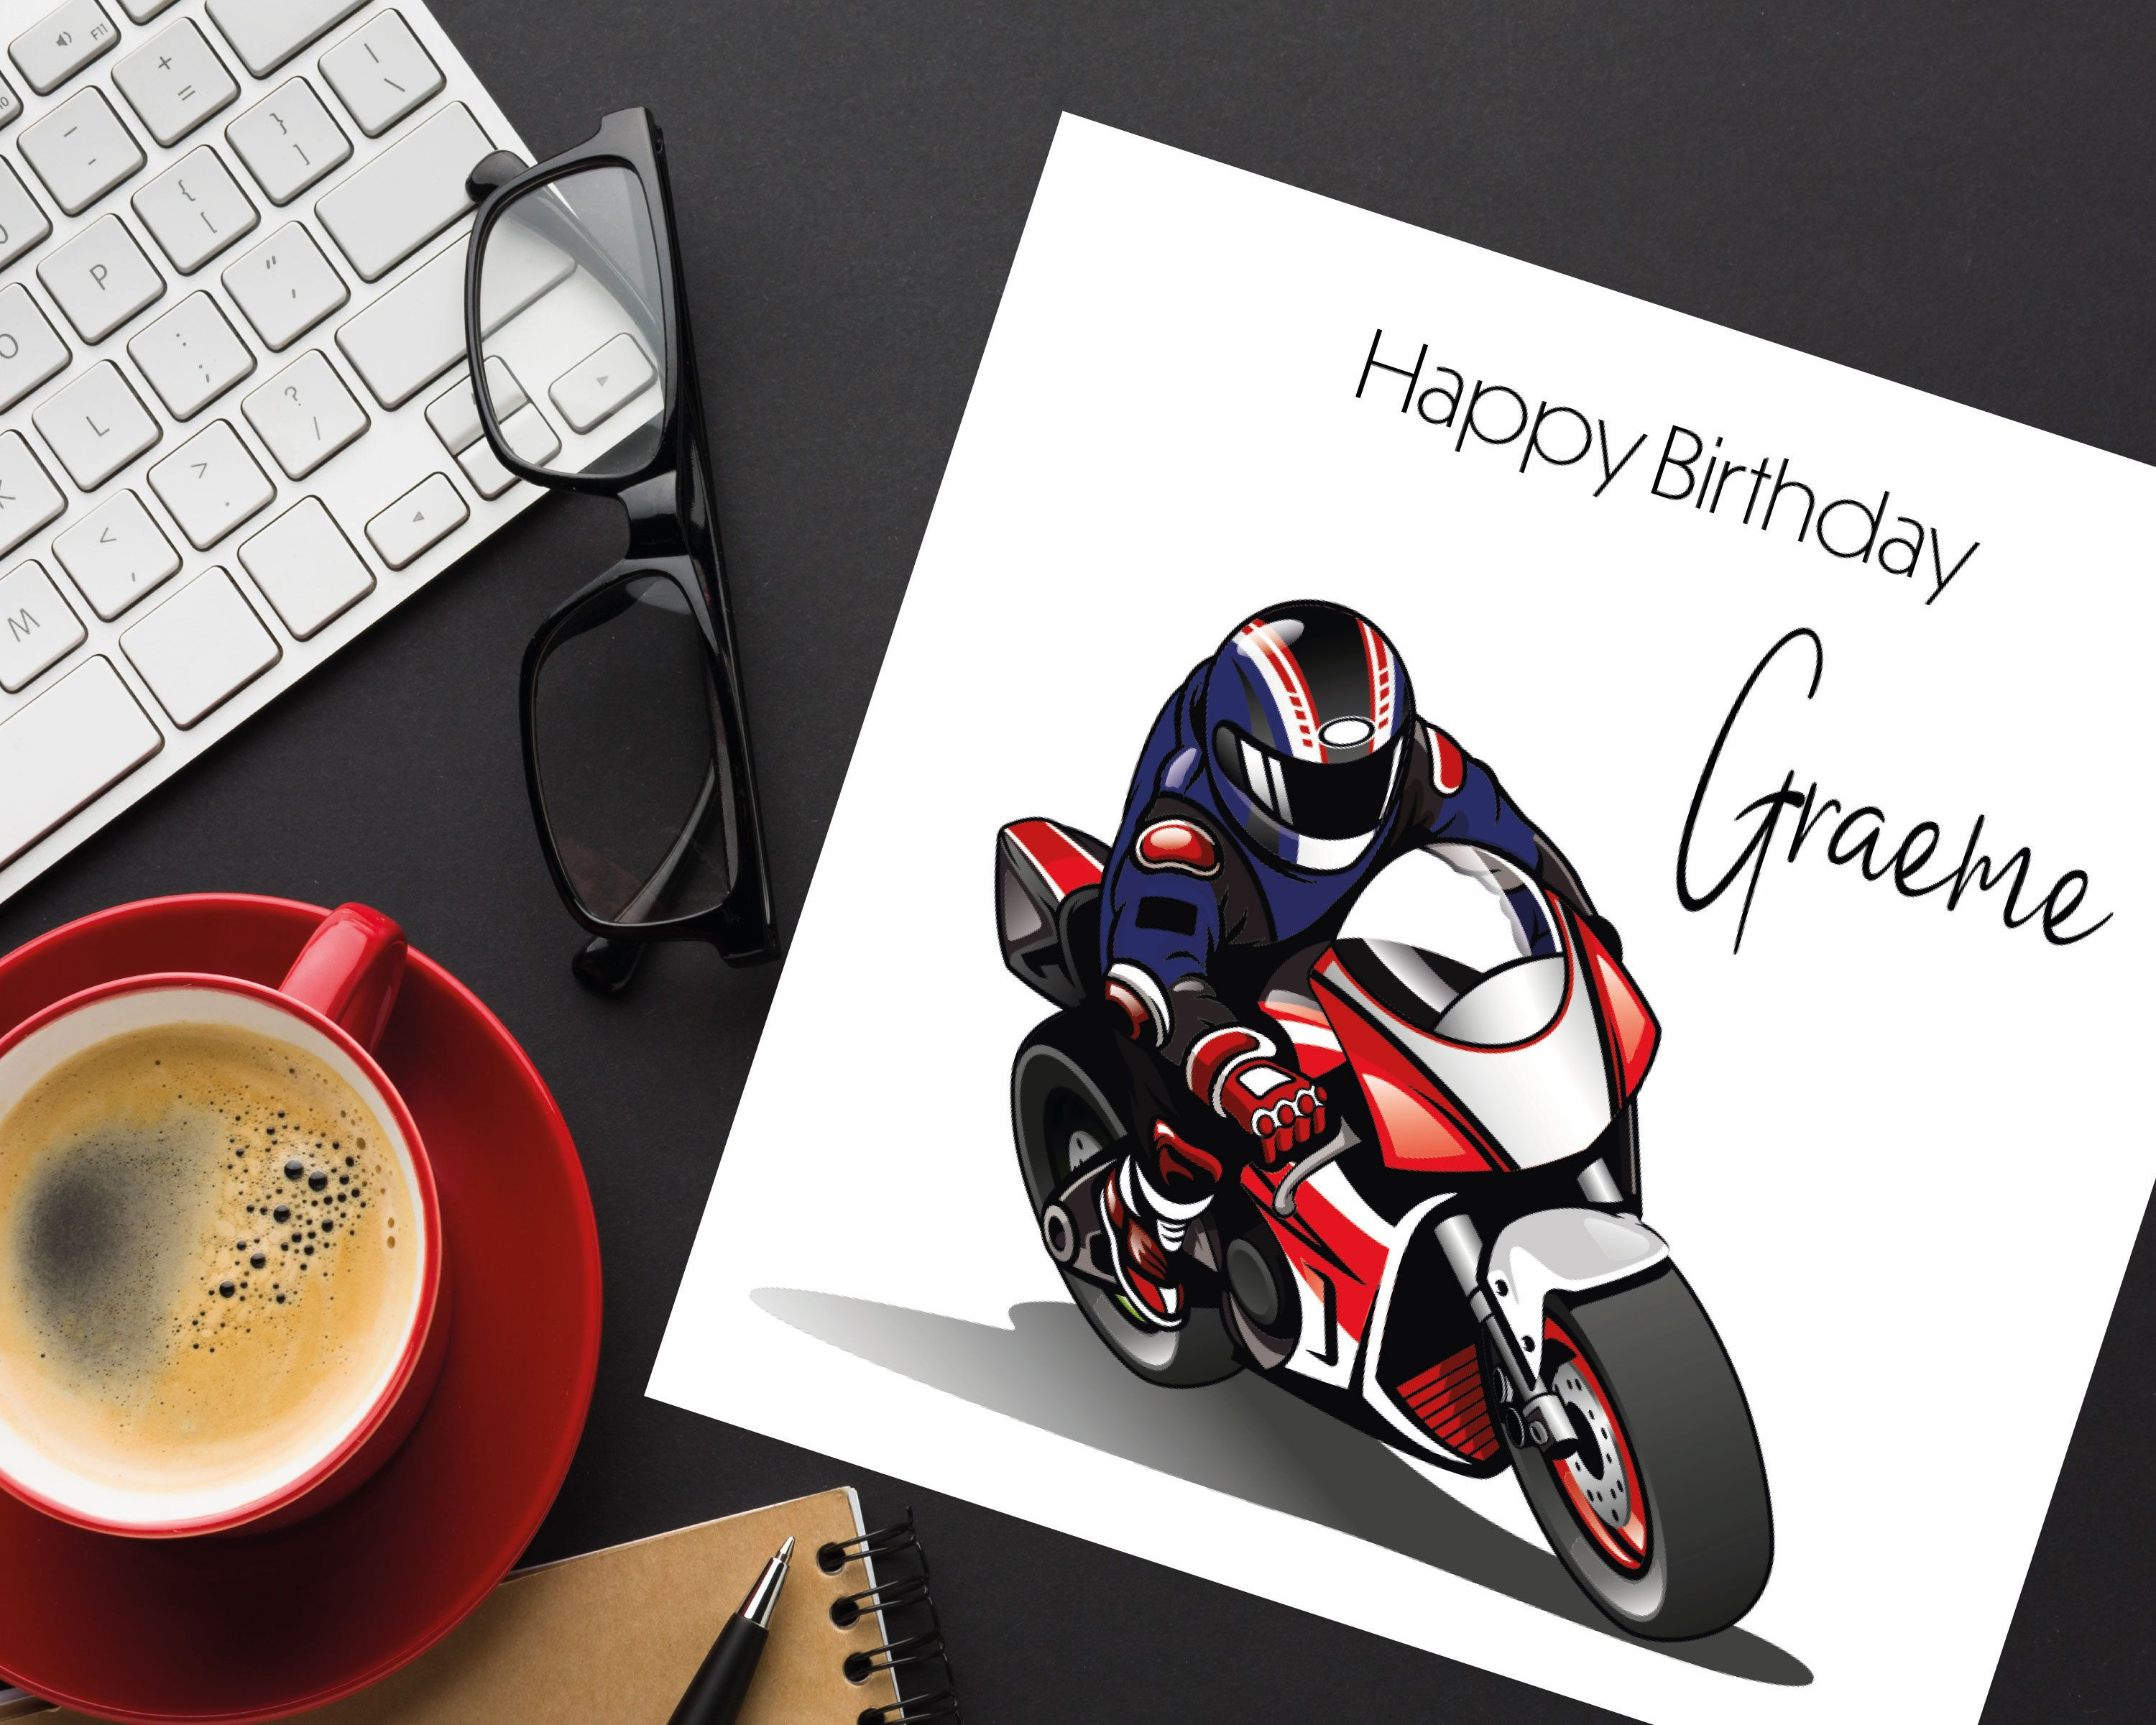 Card For Biker Motorcyclist Birthday Card With Motorbike Etsy Birthday Cards Minimalist Cards Personalized Card